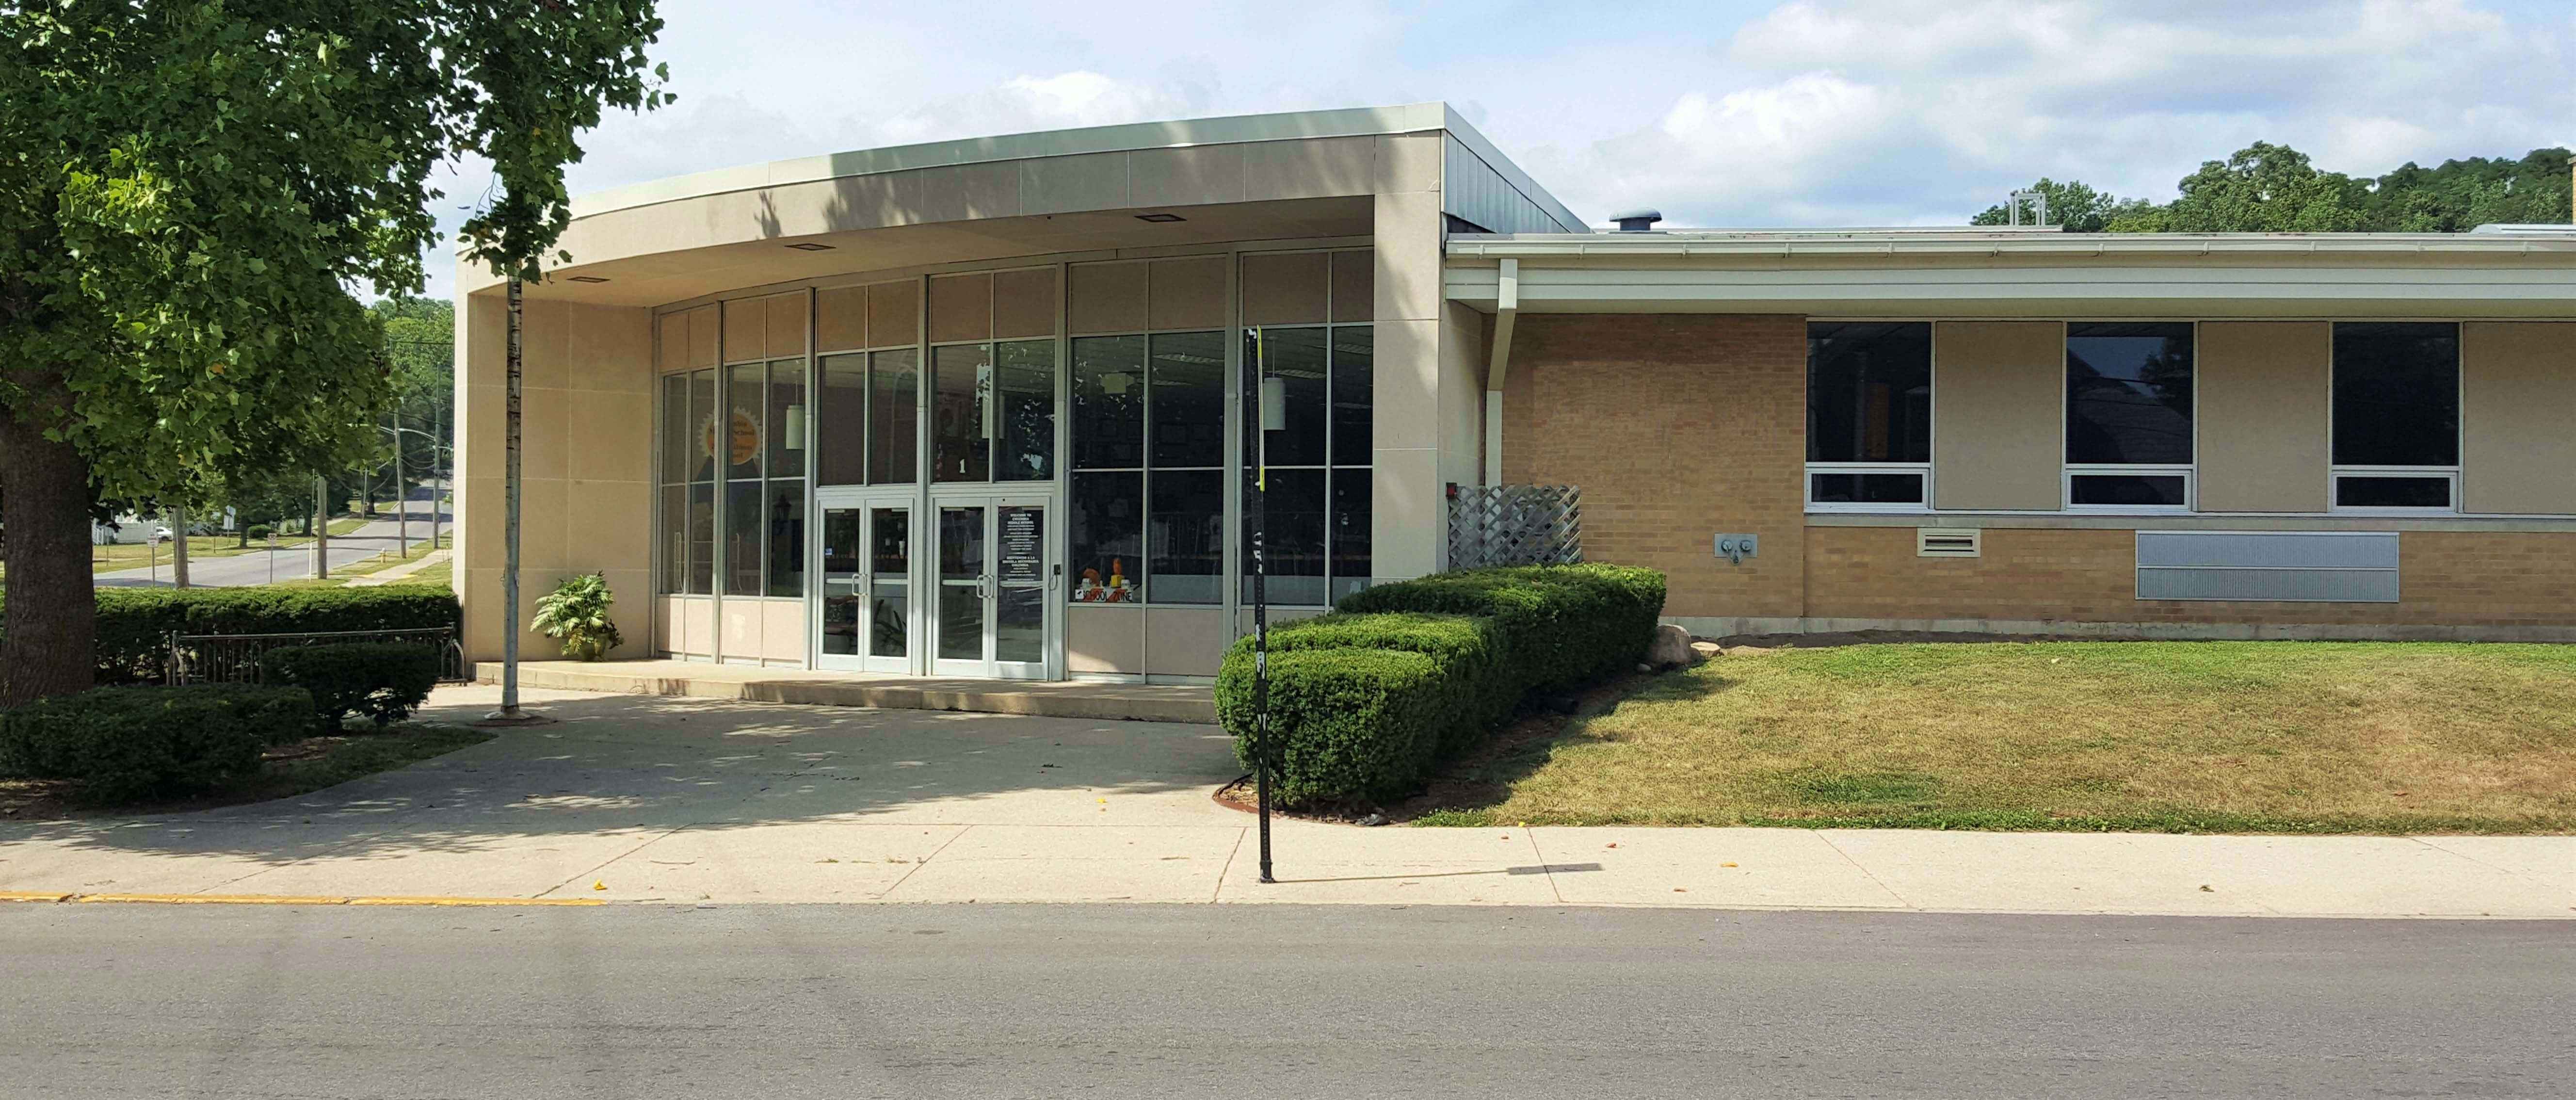 Exterior View of Columbia 6th grade academy